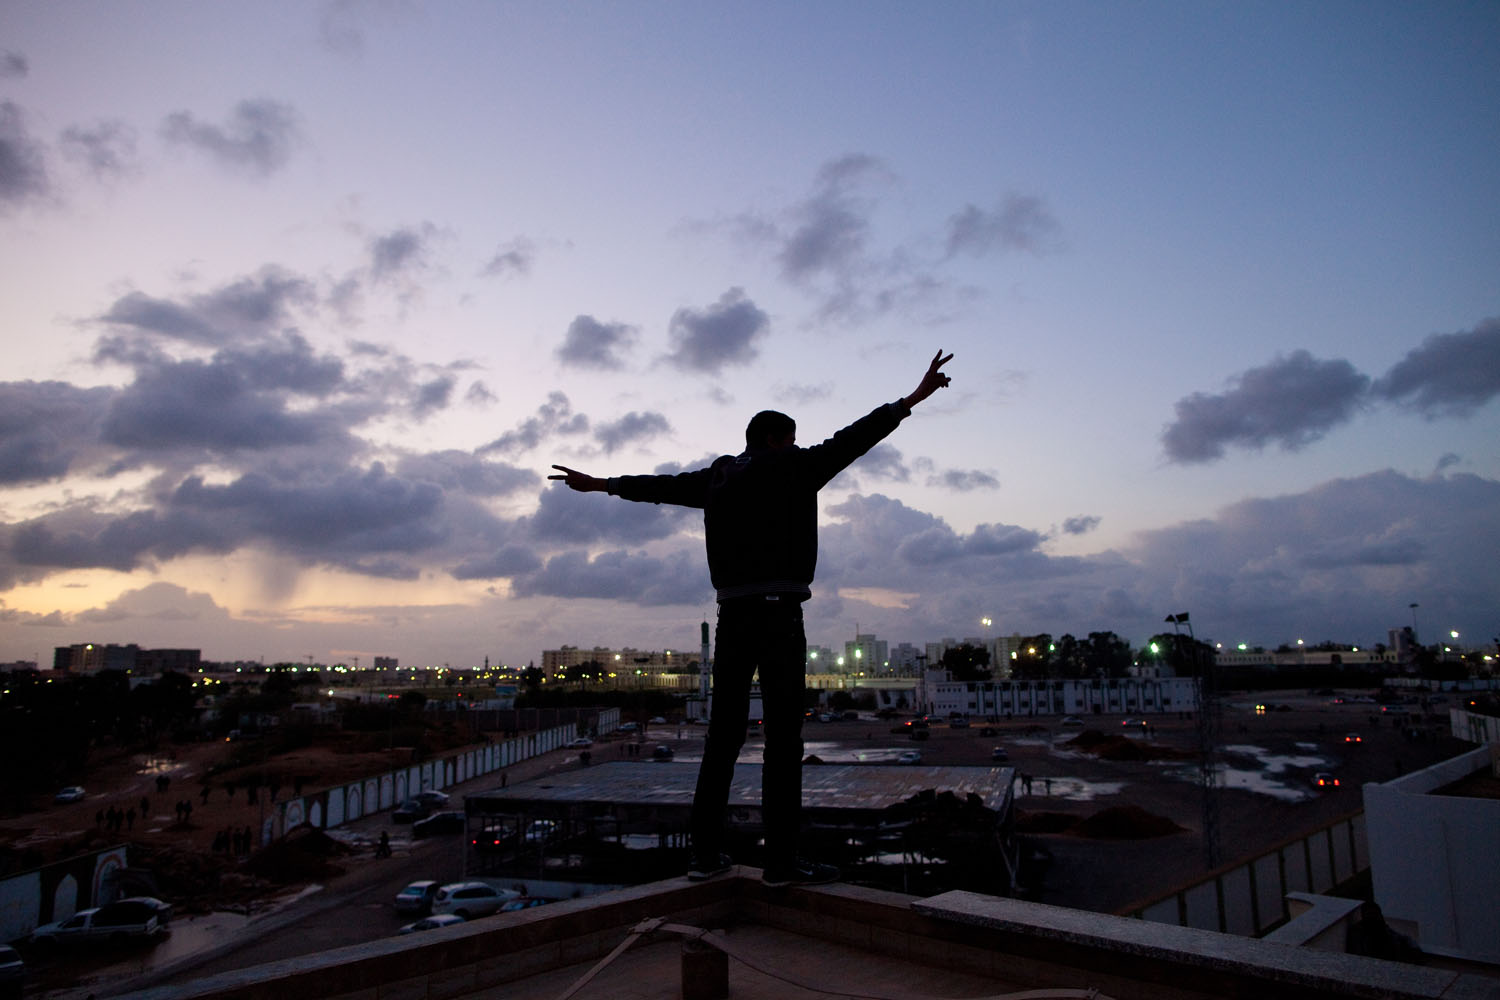 A boy stands on the roof of one of Muammar Gaddafi's old palaces in Benghazi, burned down by the opposition forces.